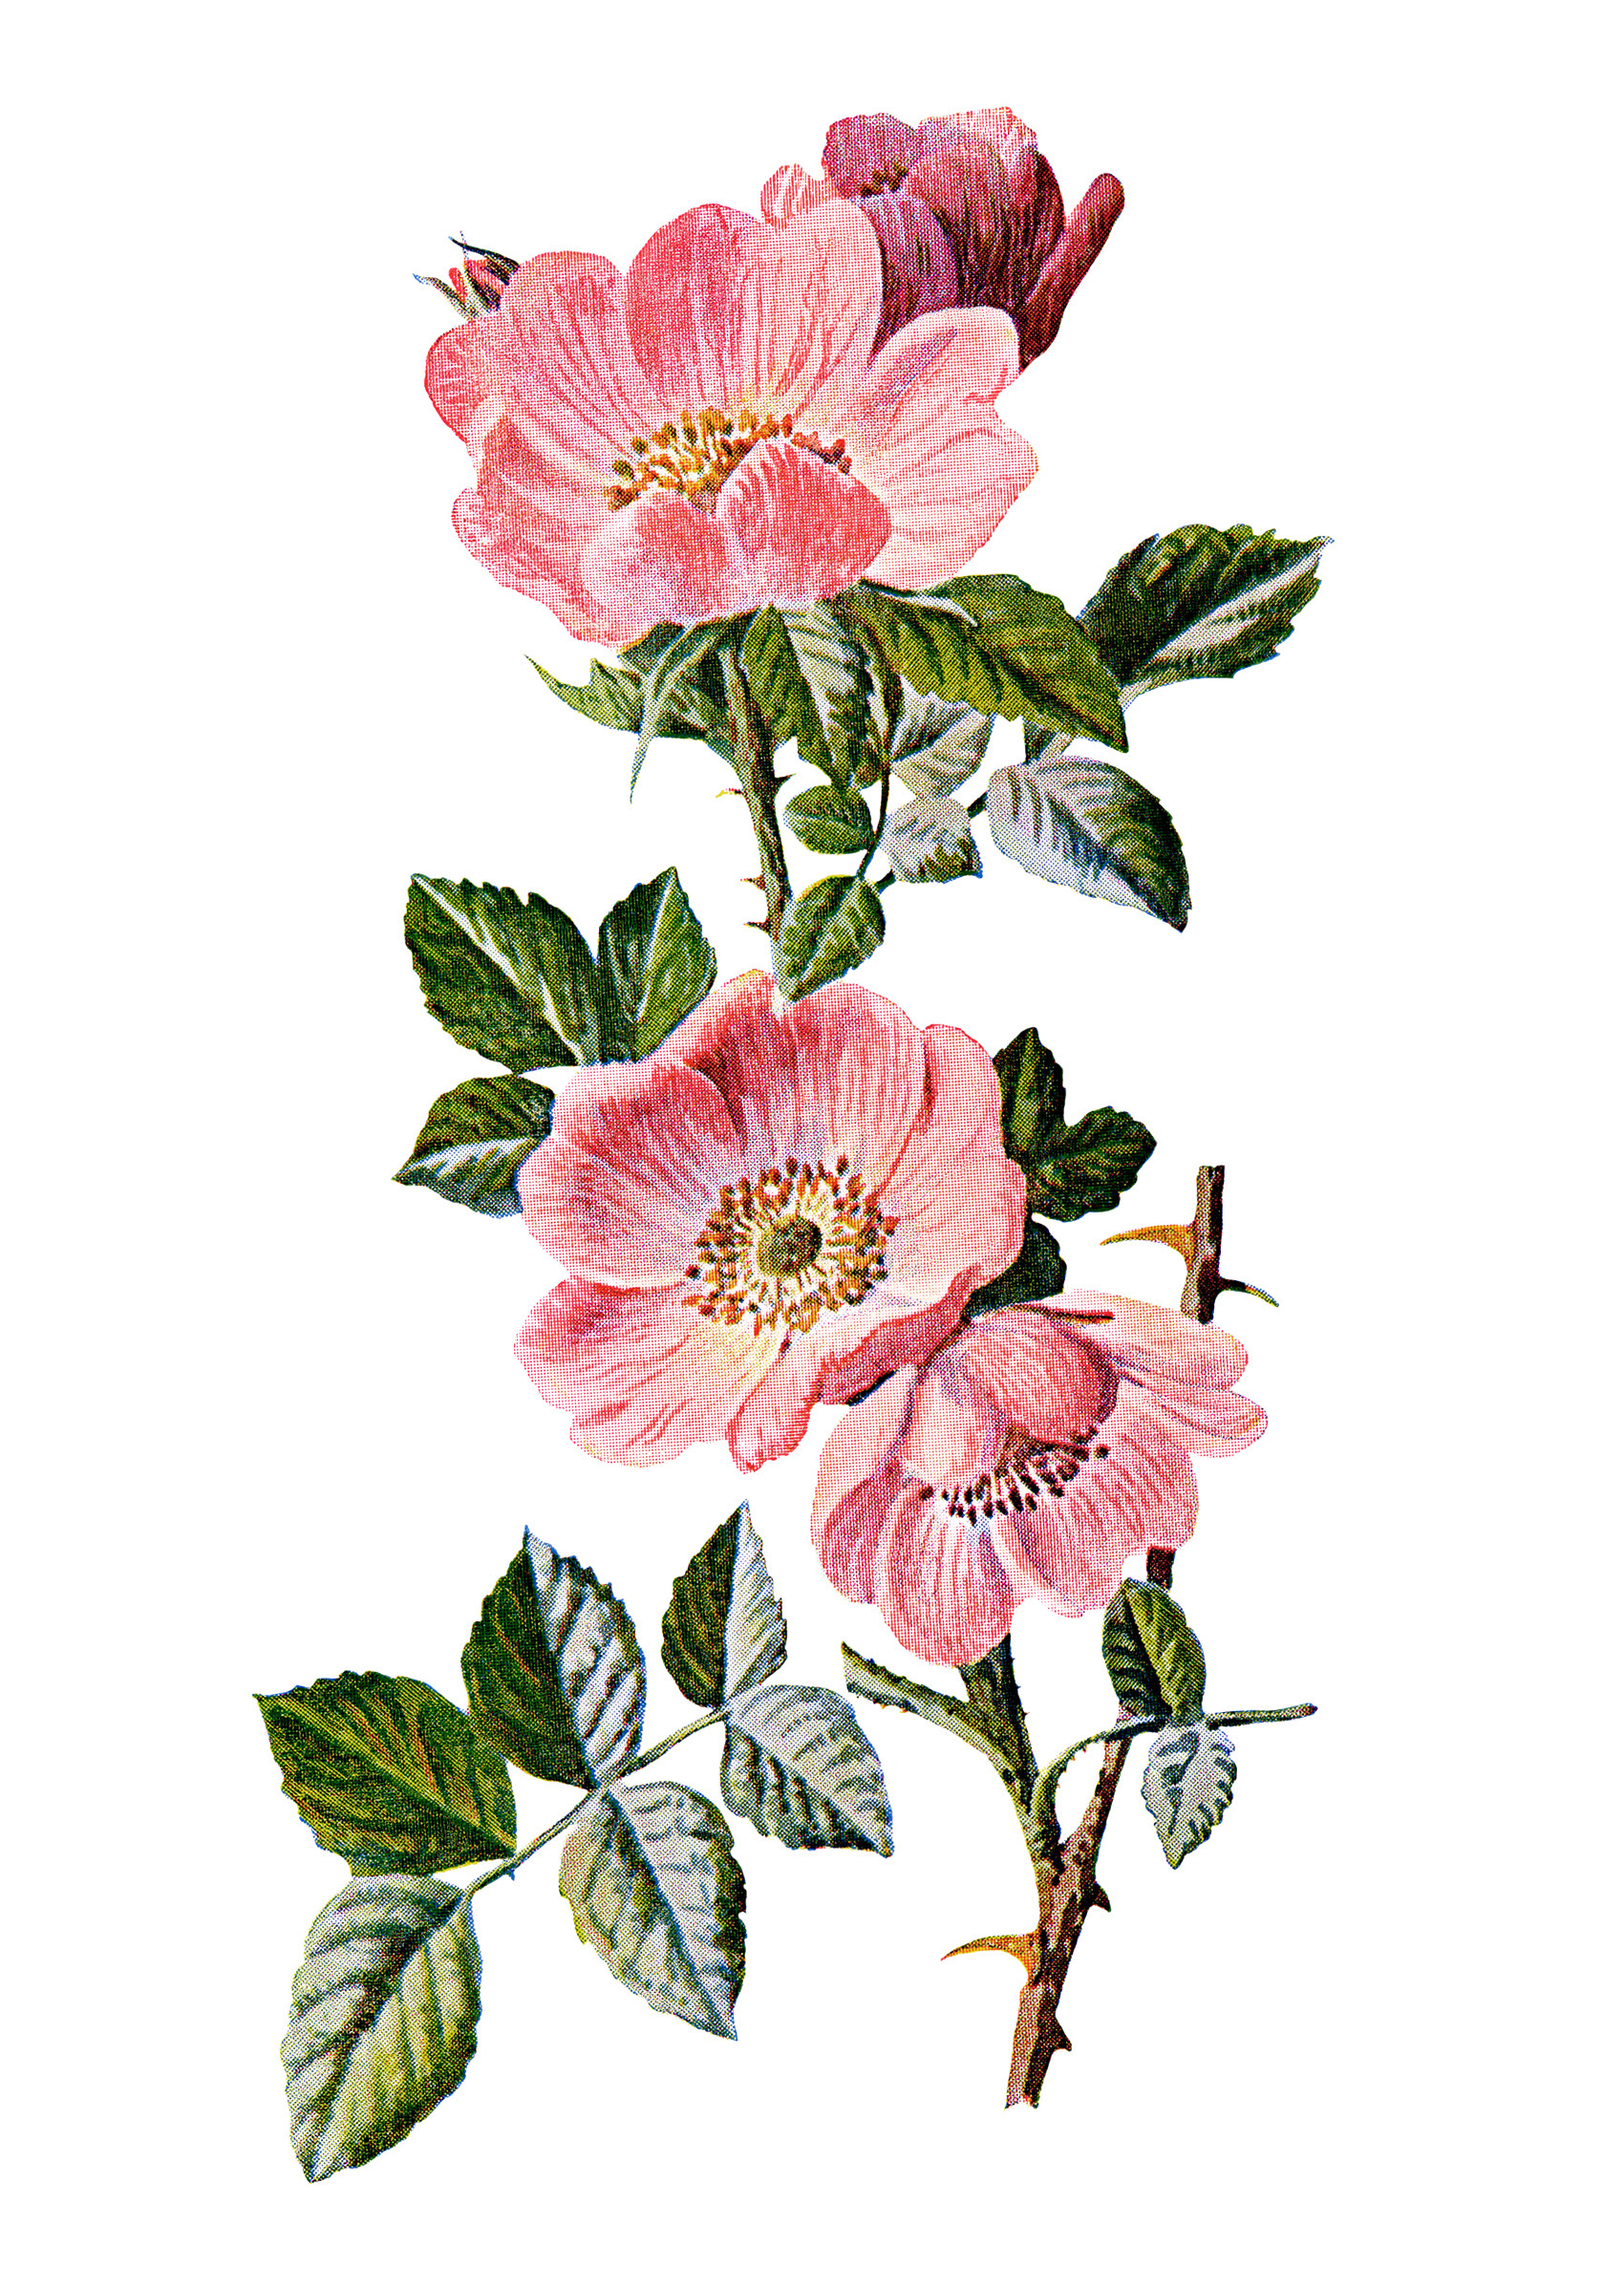 Sweet briar rose old design shop blog sweet briar vintage flower illustration wild rose image frederick mightylinksfo